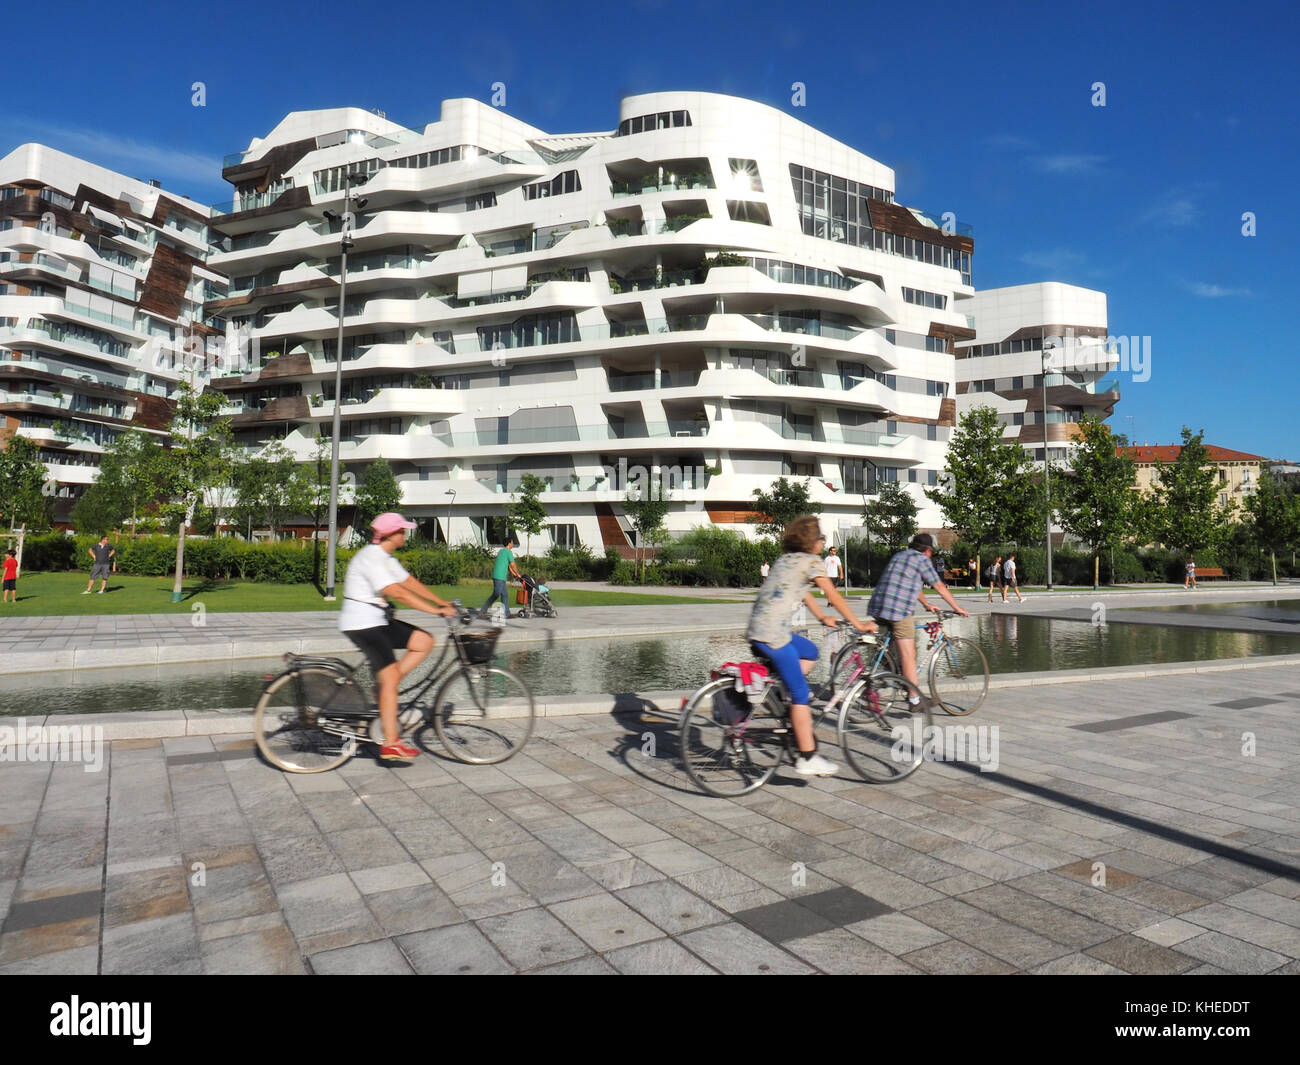 Europe , Italy , Lombardy , Milan ,Citylife district , residencies building desgned by Zaha Hadid Stock Photo